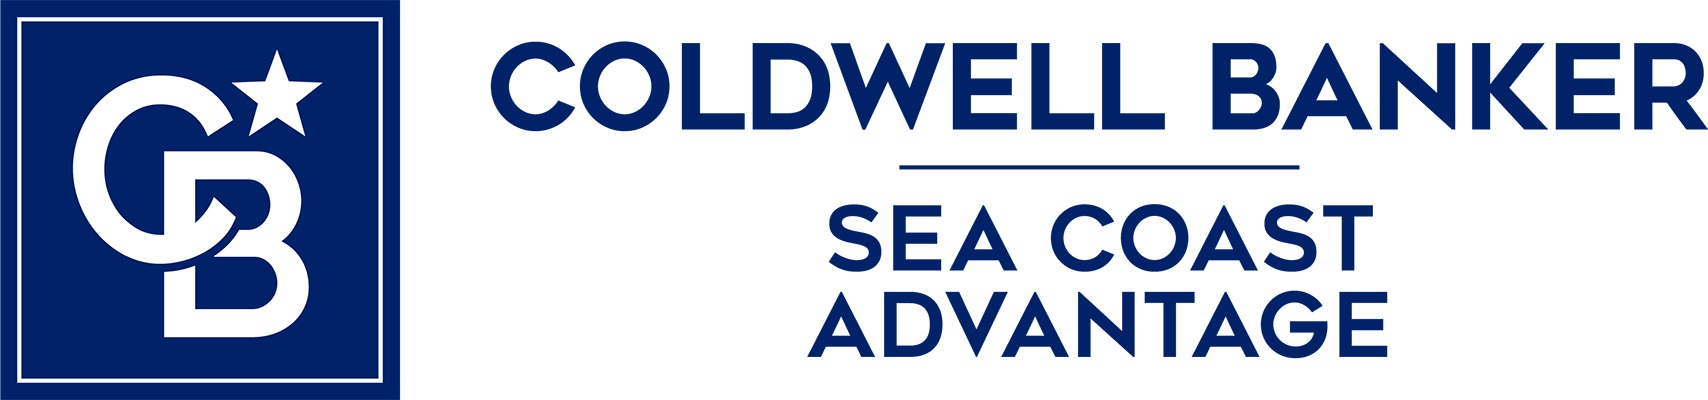 Daniel Jeeves - Coldwell Banker Sea Coast Advantage Realty